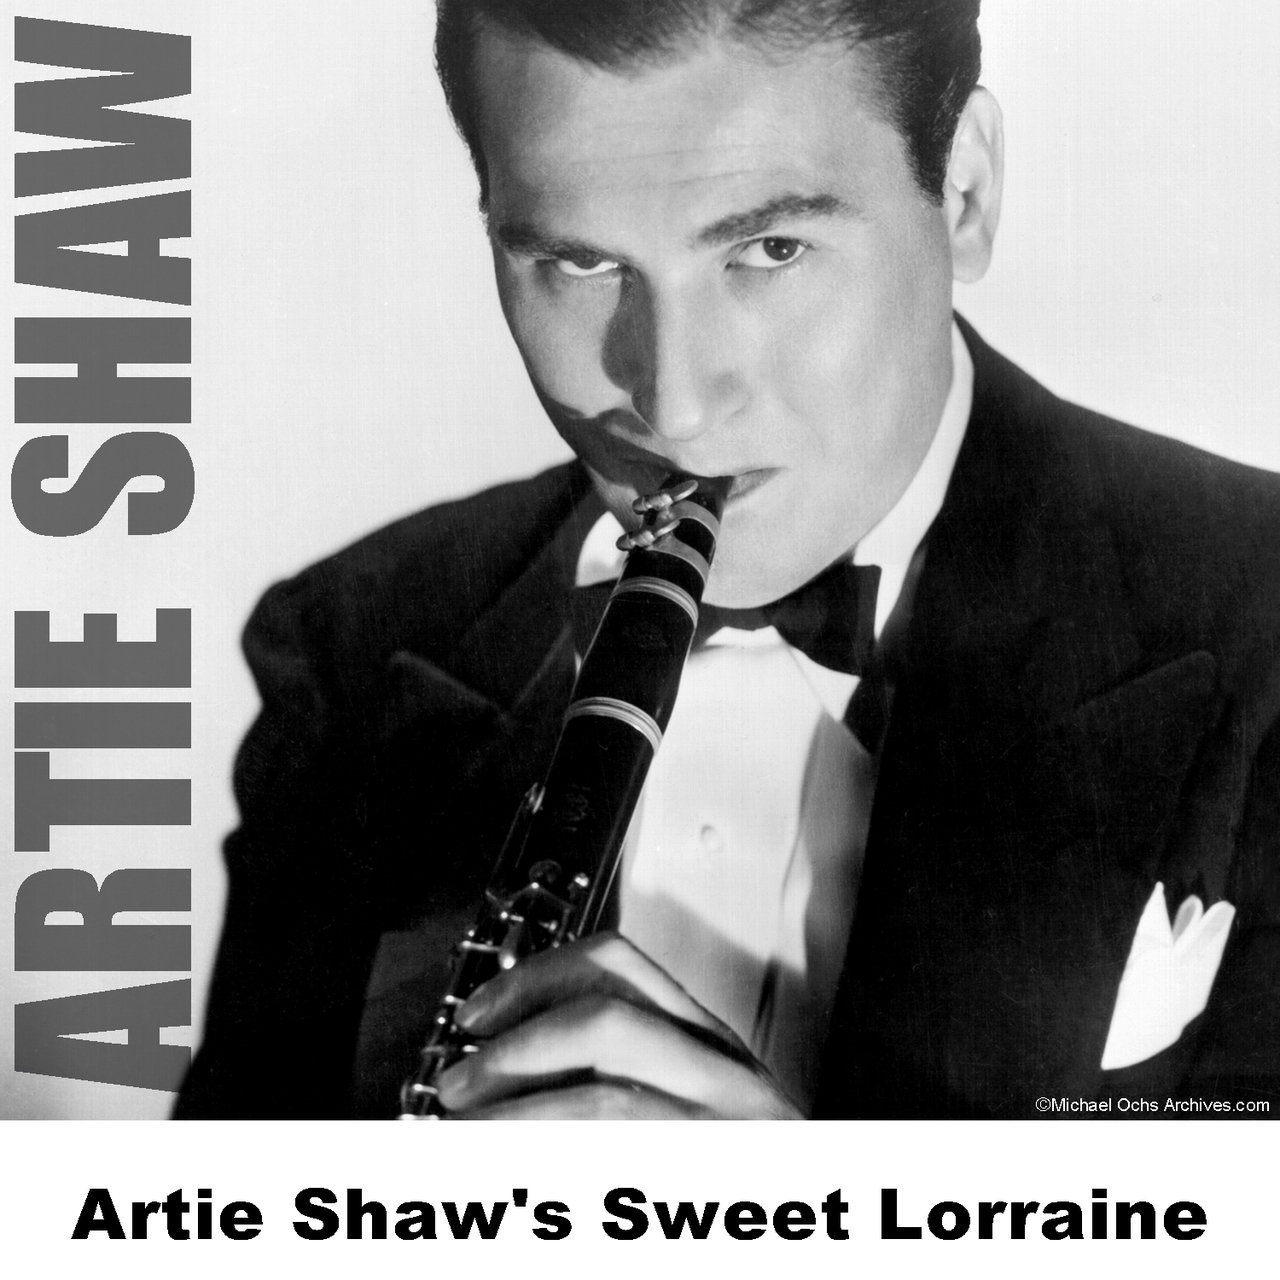 Artie Shaw Yesterdays Listen To Artie Shaw S Sweet Lorraine By Artie Shaw On Tidal